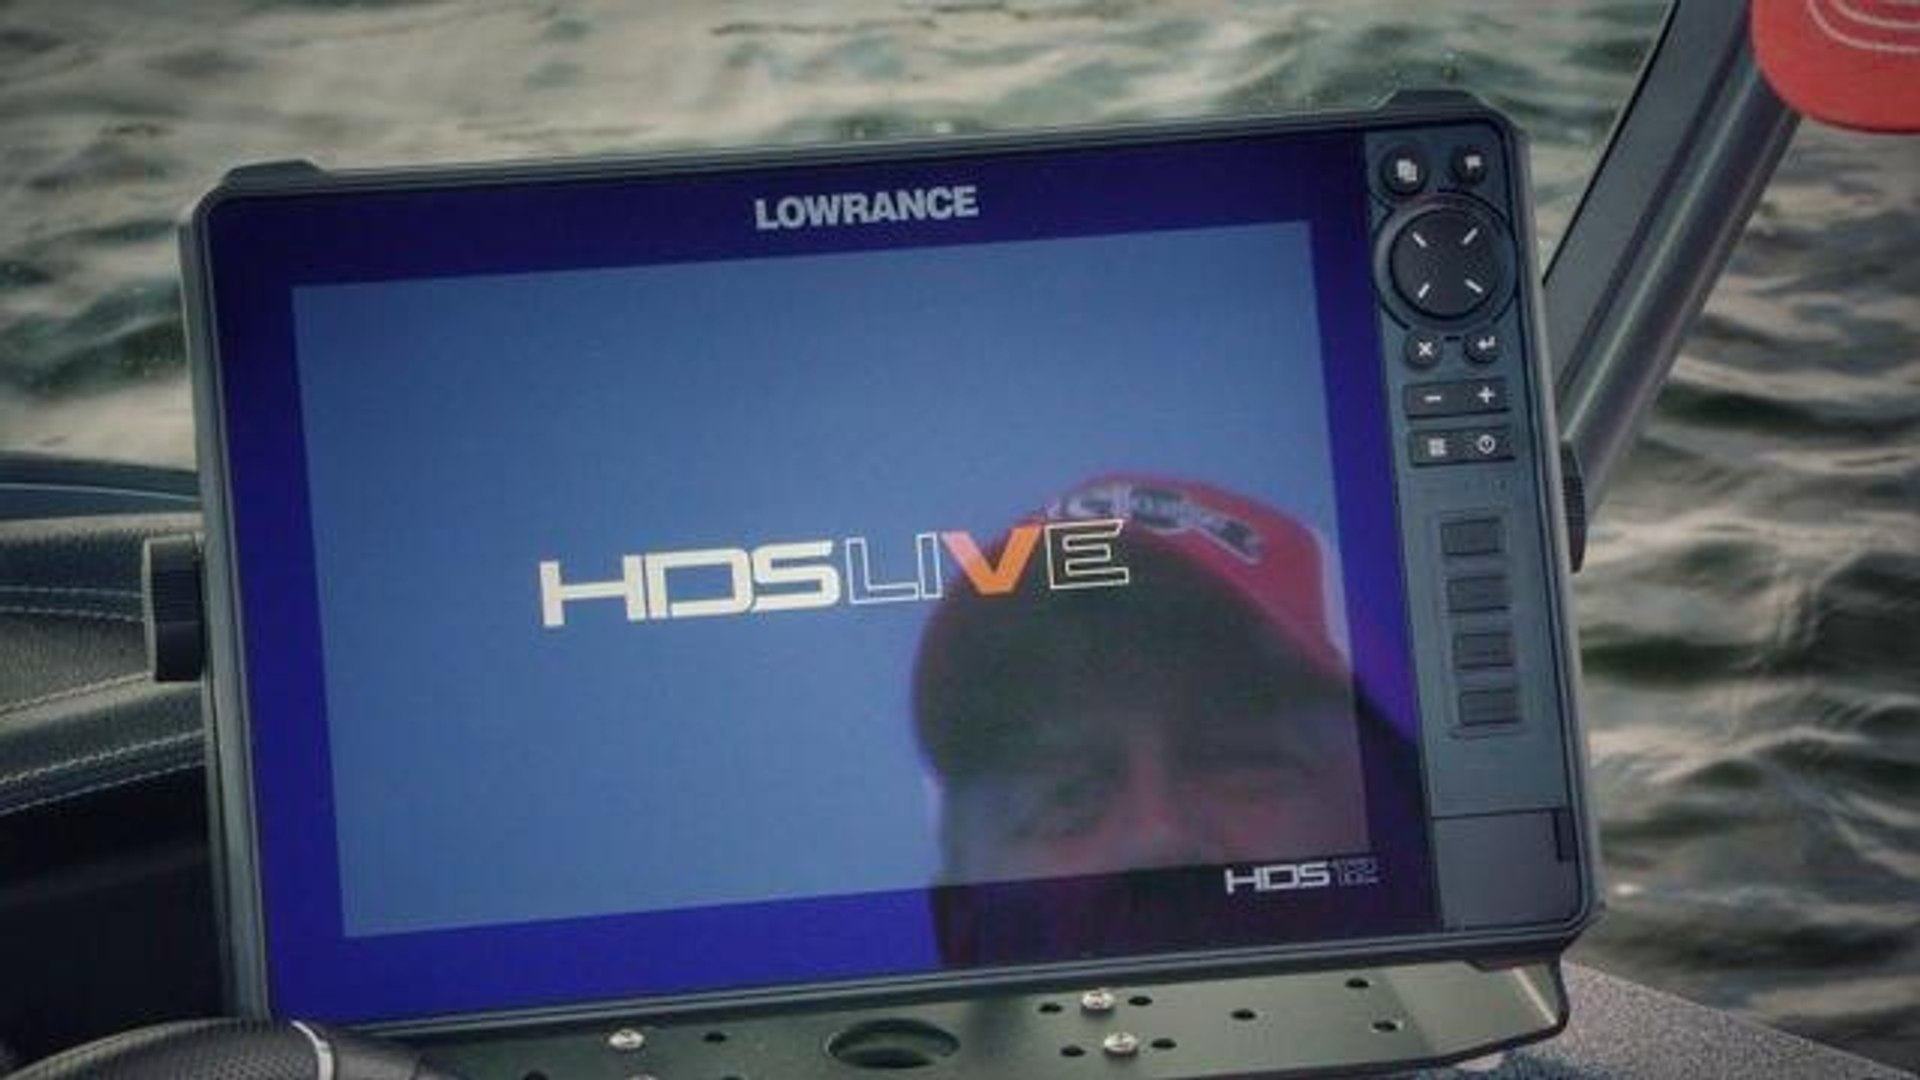 First Look Lowrance's New HDS LIVE Fish Finders